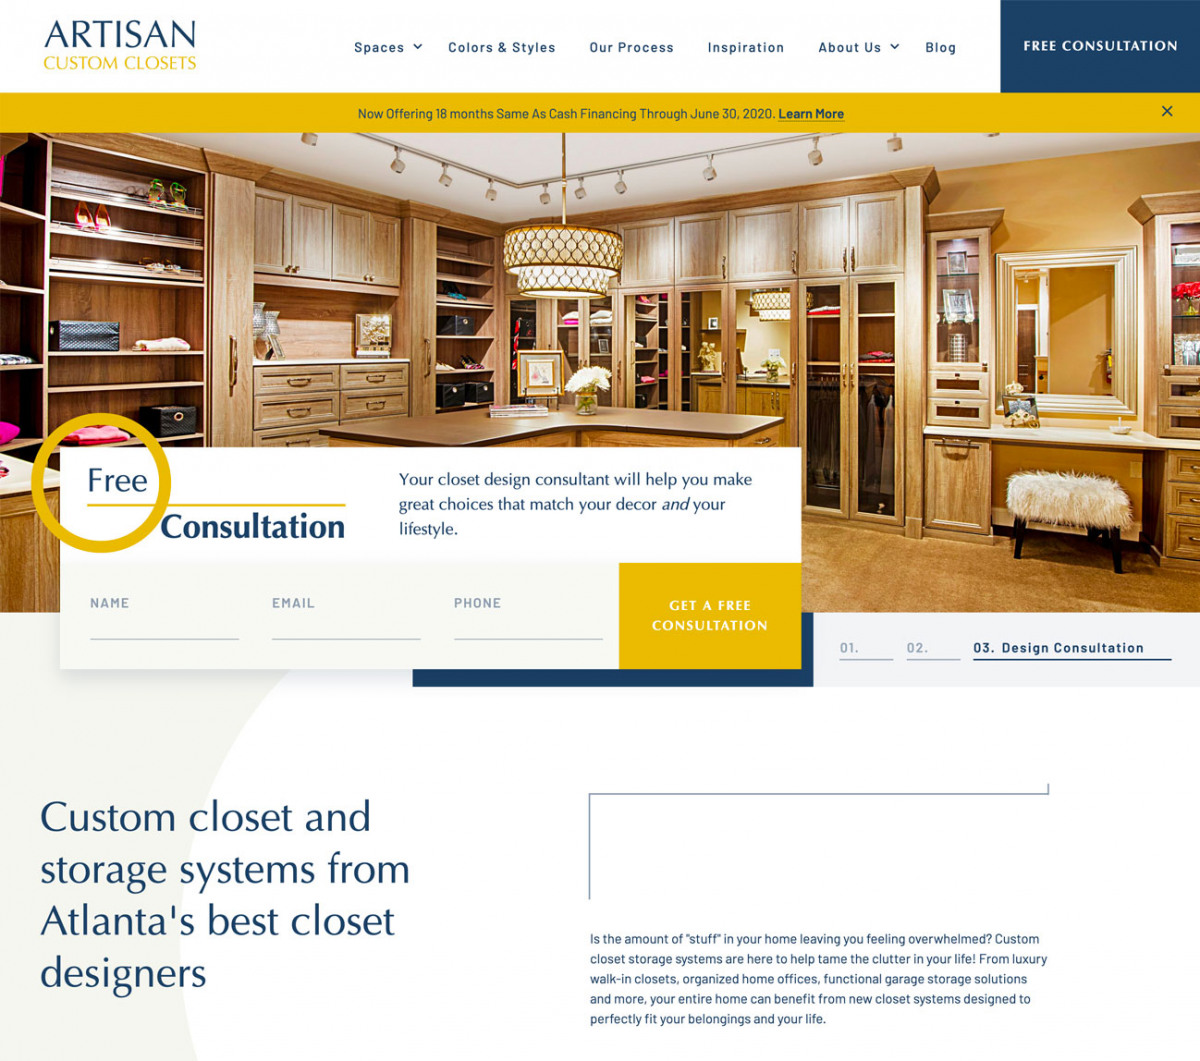 Image of website for Artisan Custom Closets